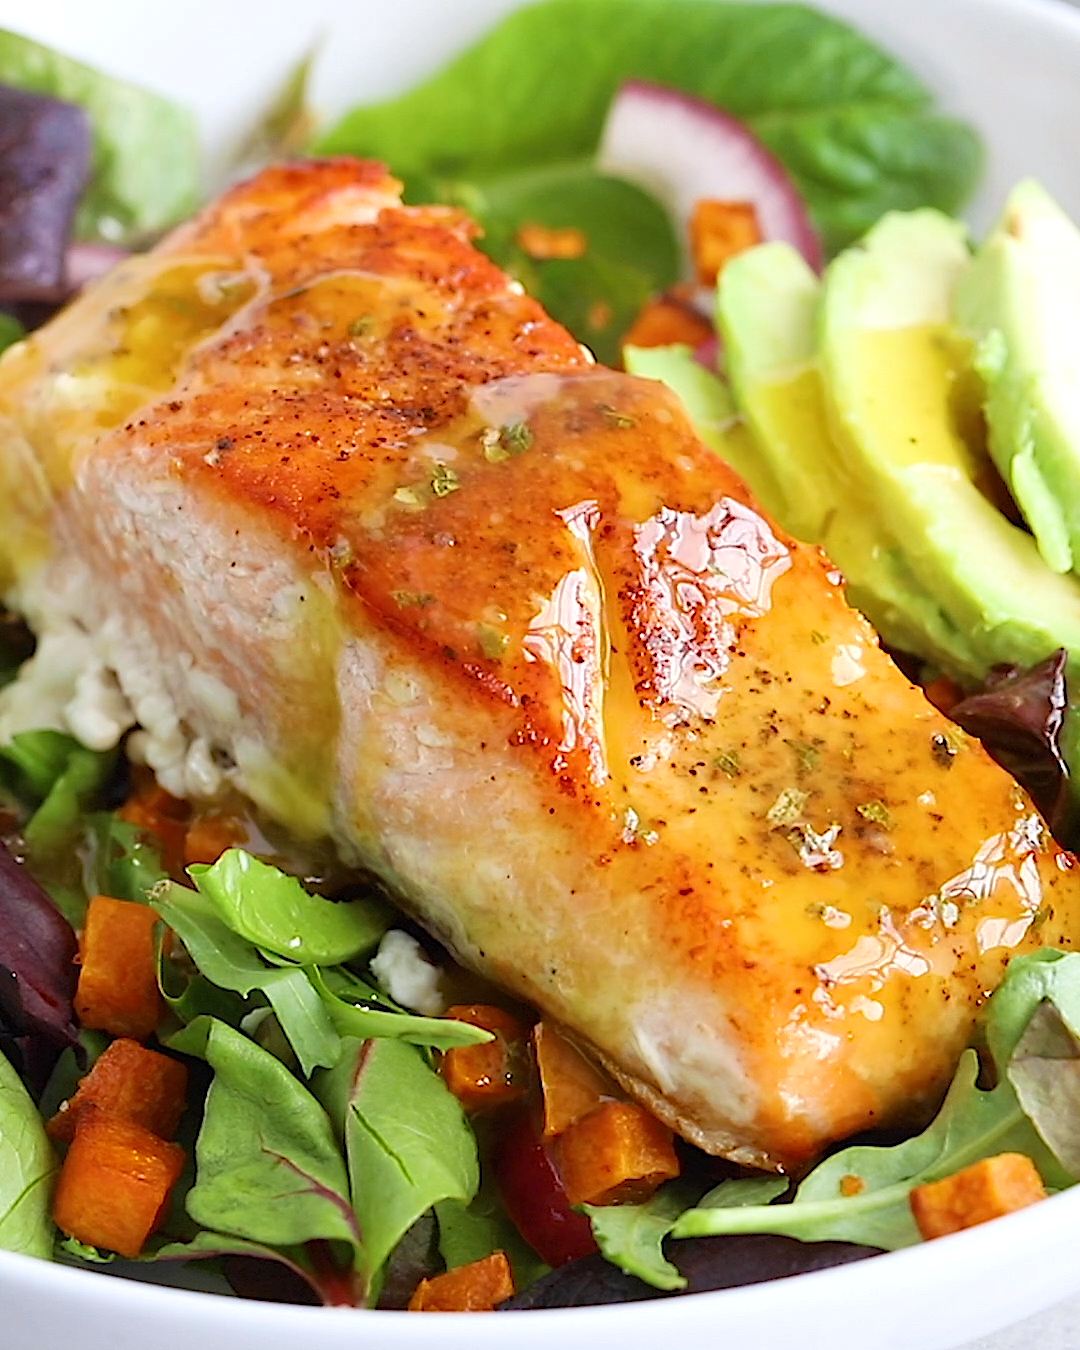 This salmon salad is loaded with roasted sweet potato croutons, avocado, pickled onions and dressed in a light lemon vinaigrette! It's an easy go-to meal you'll love having as part of your weekly rotation.